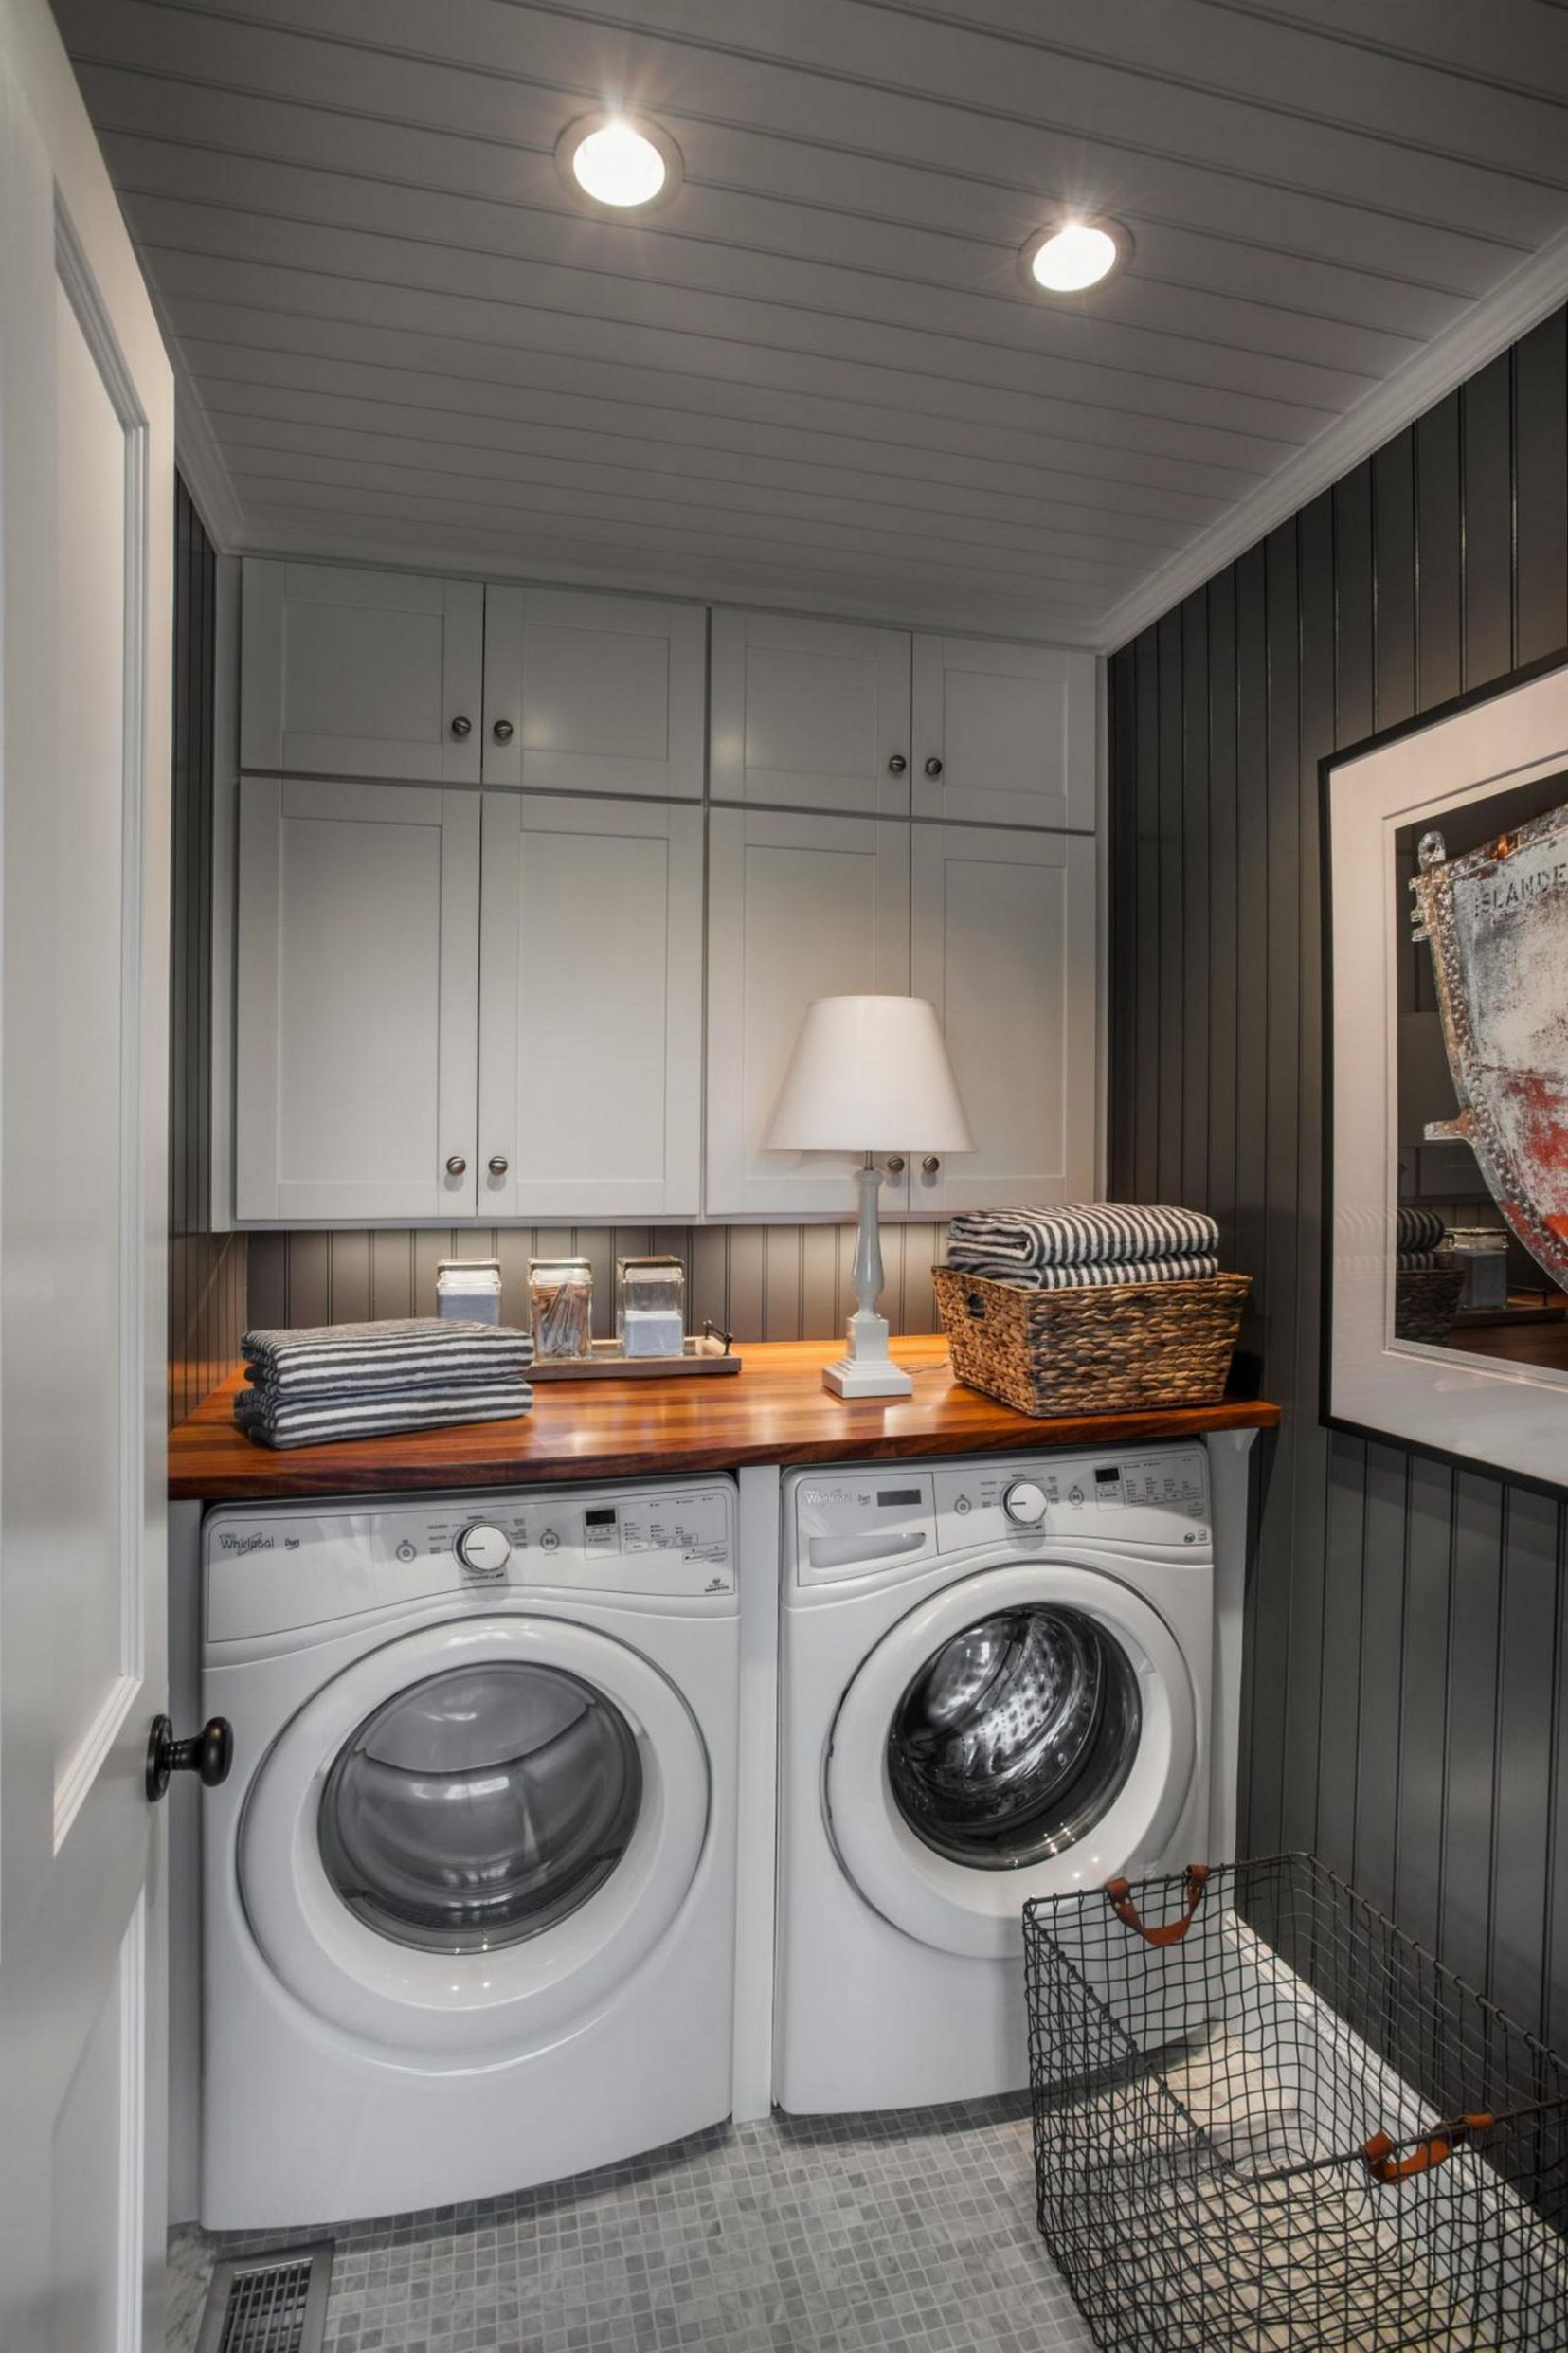 9 Cool Laundry Room Ideas With Minimalist Designs ~ feryhan